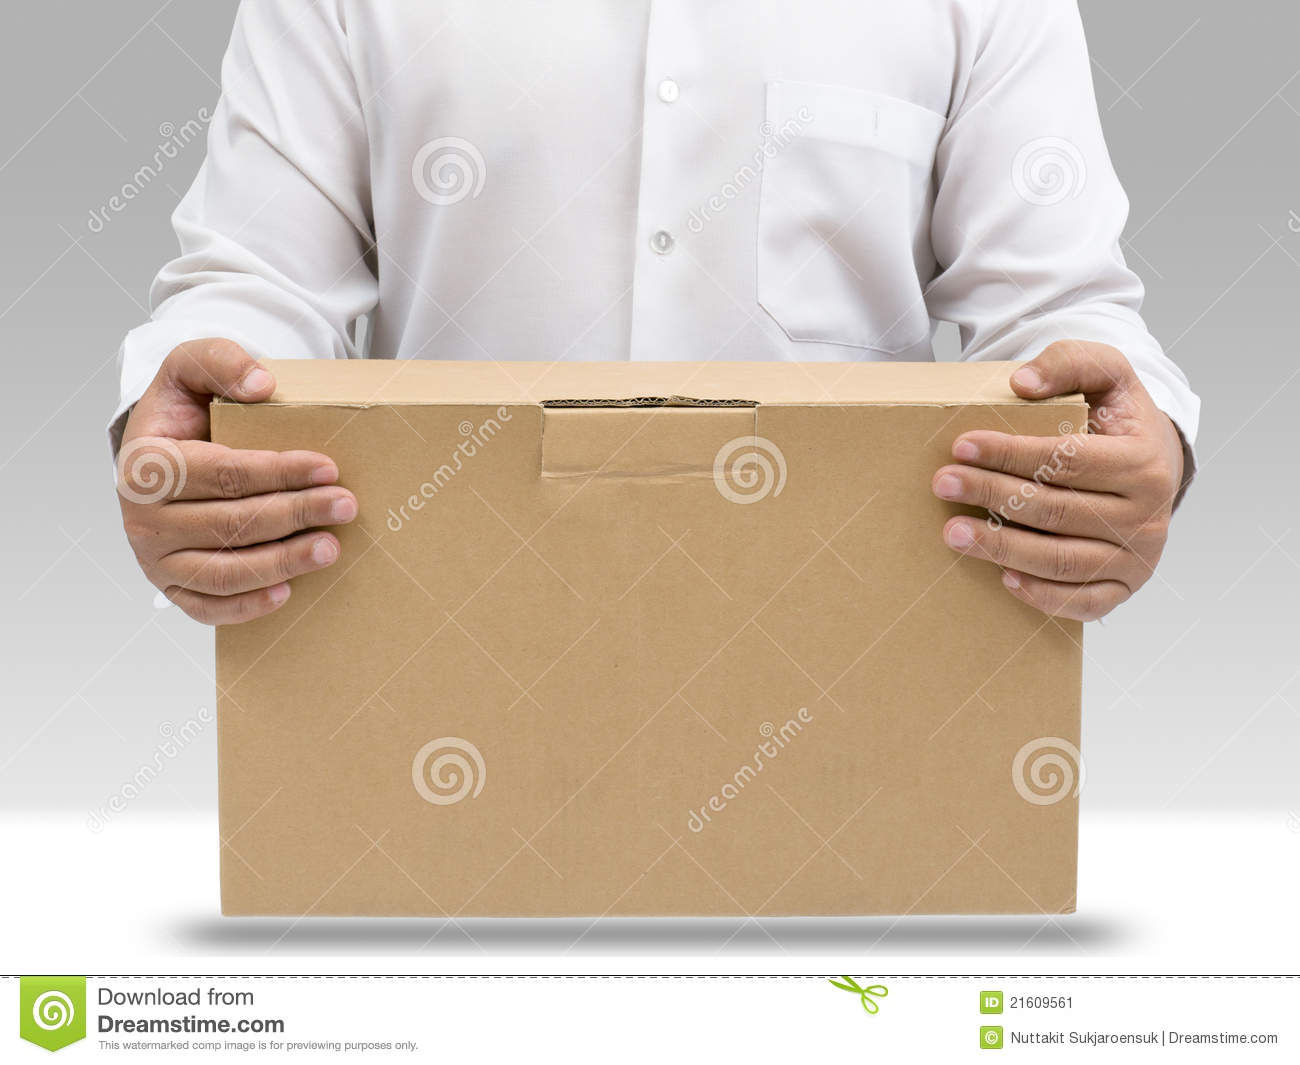 how to carry a box